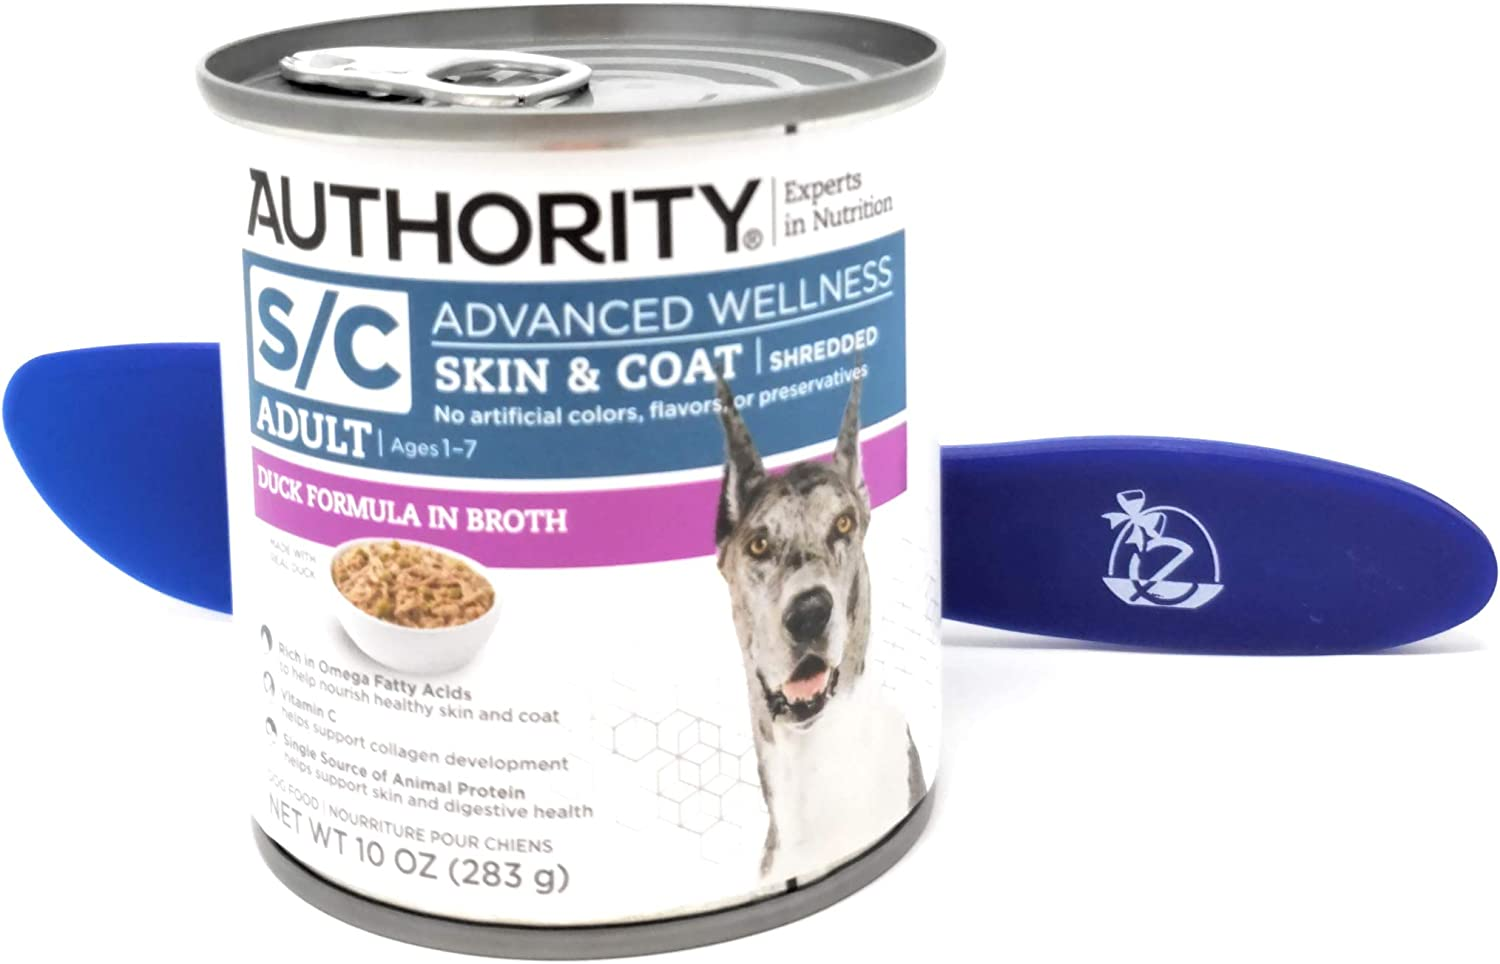 Authority Advanced Wellness Shredded Wet Canned Dog Food, 10oz (Pack of 12) and Especiales Cosas Spatula